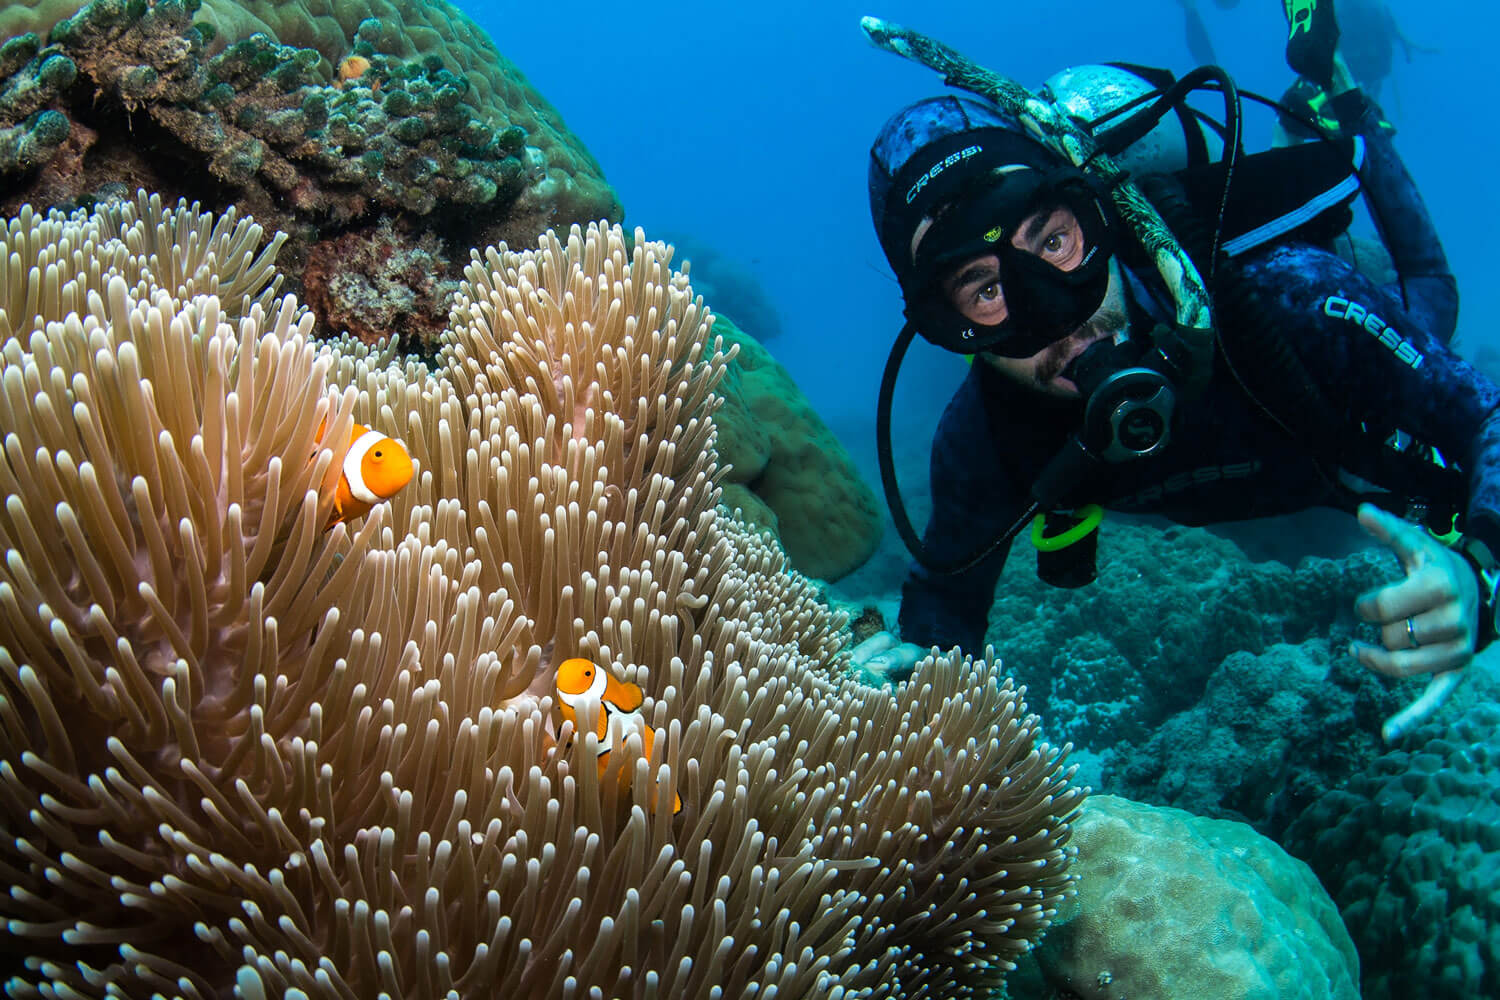 Scuba dive at Great Barrier Reef